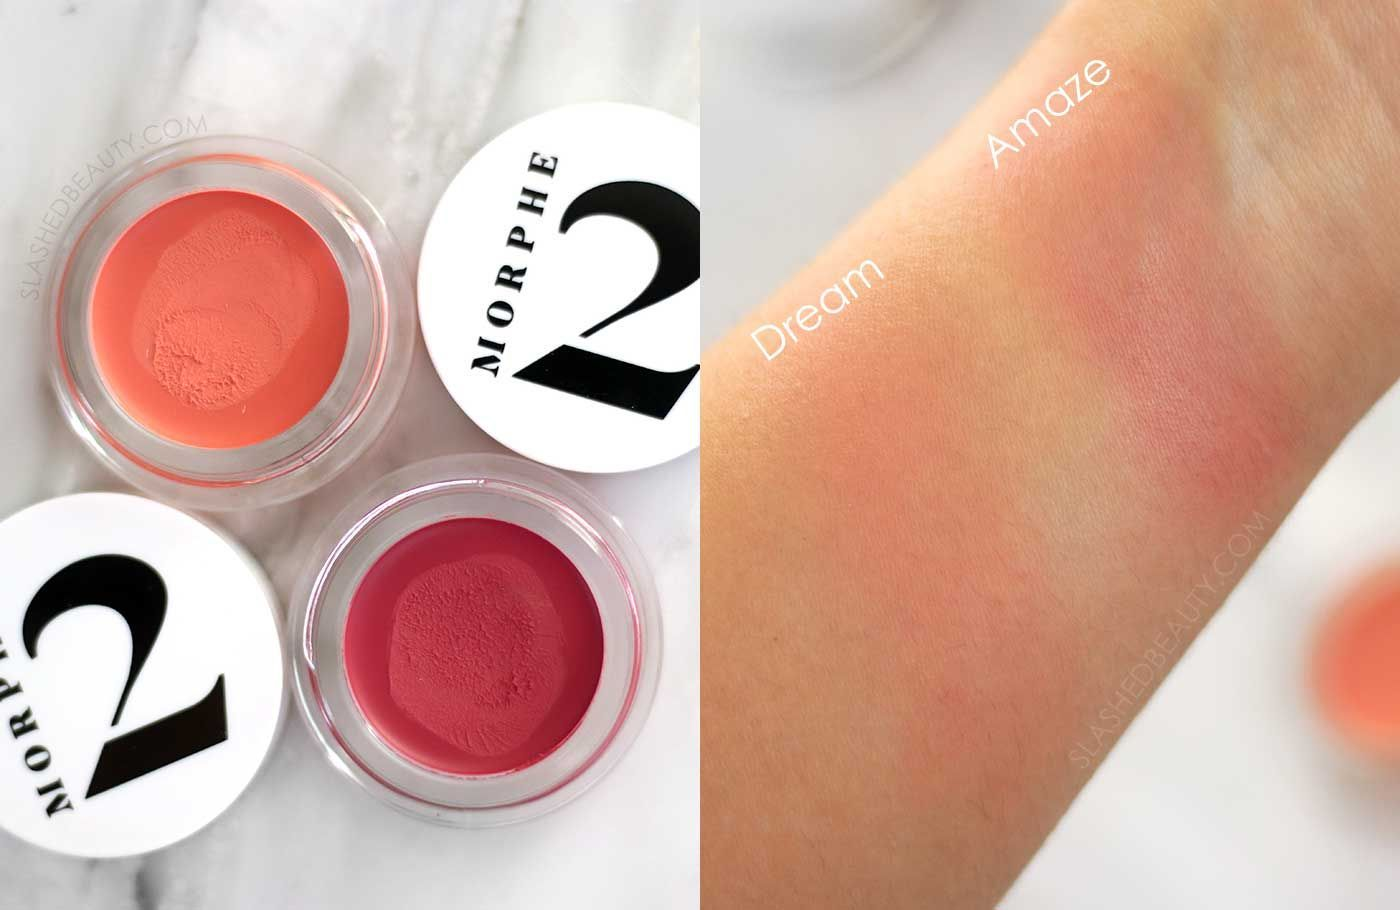 Review Morphe 2 Makeup Line On Combo Skin Slashed Beauty Combo Skin Morphe Natural Lip Shades Get inspired and use them to your benefit. morphe 2 makeup line on combo skin